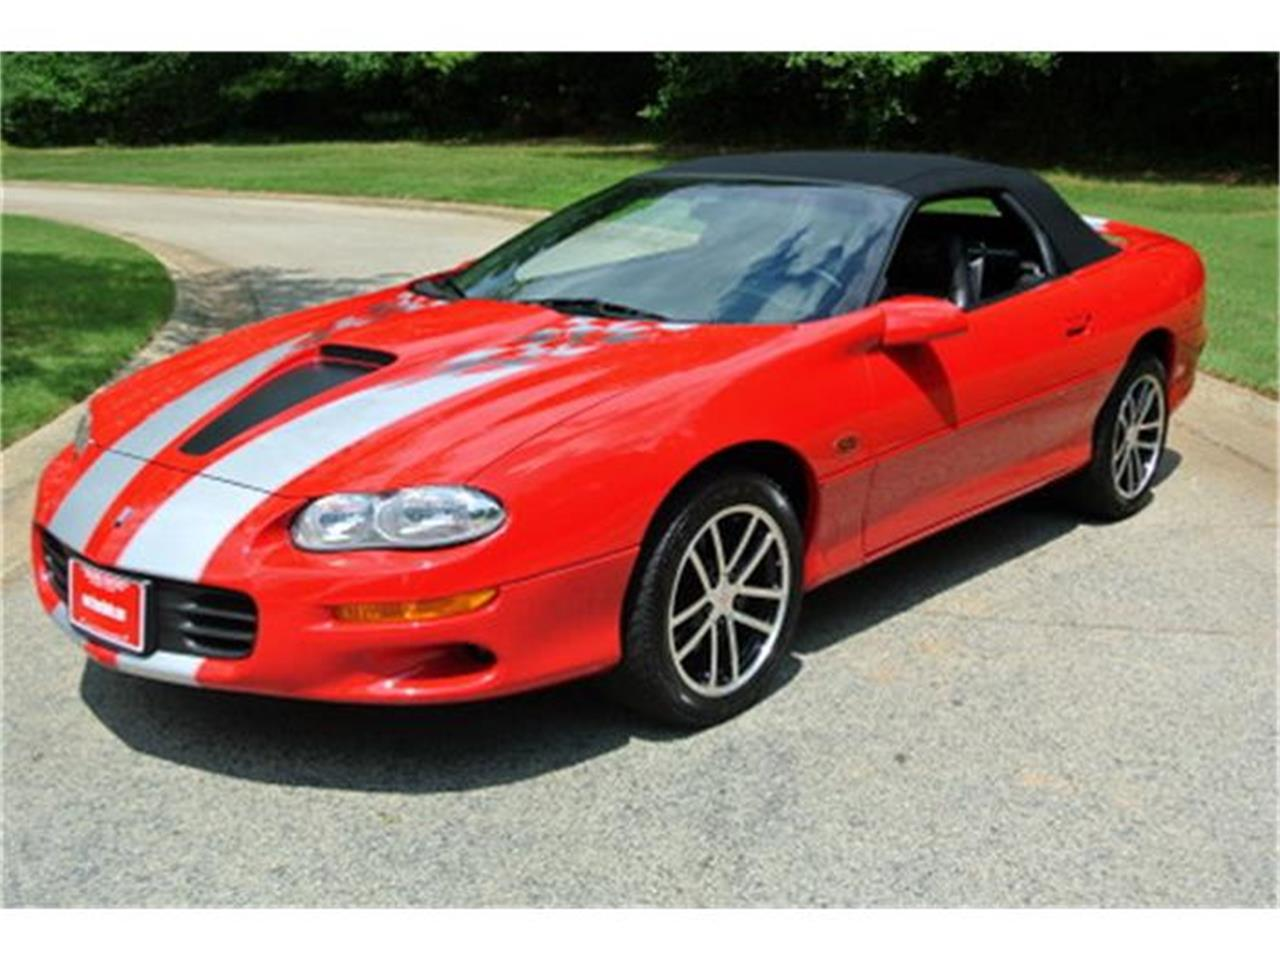 Large Picture of '02 Chevrolet Camaro located in Roswell Georgia - $28,950.00 - F0Y5